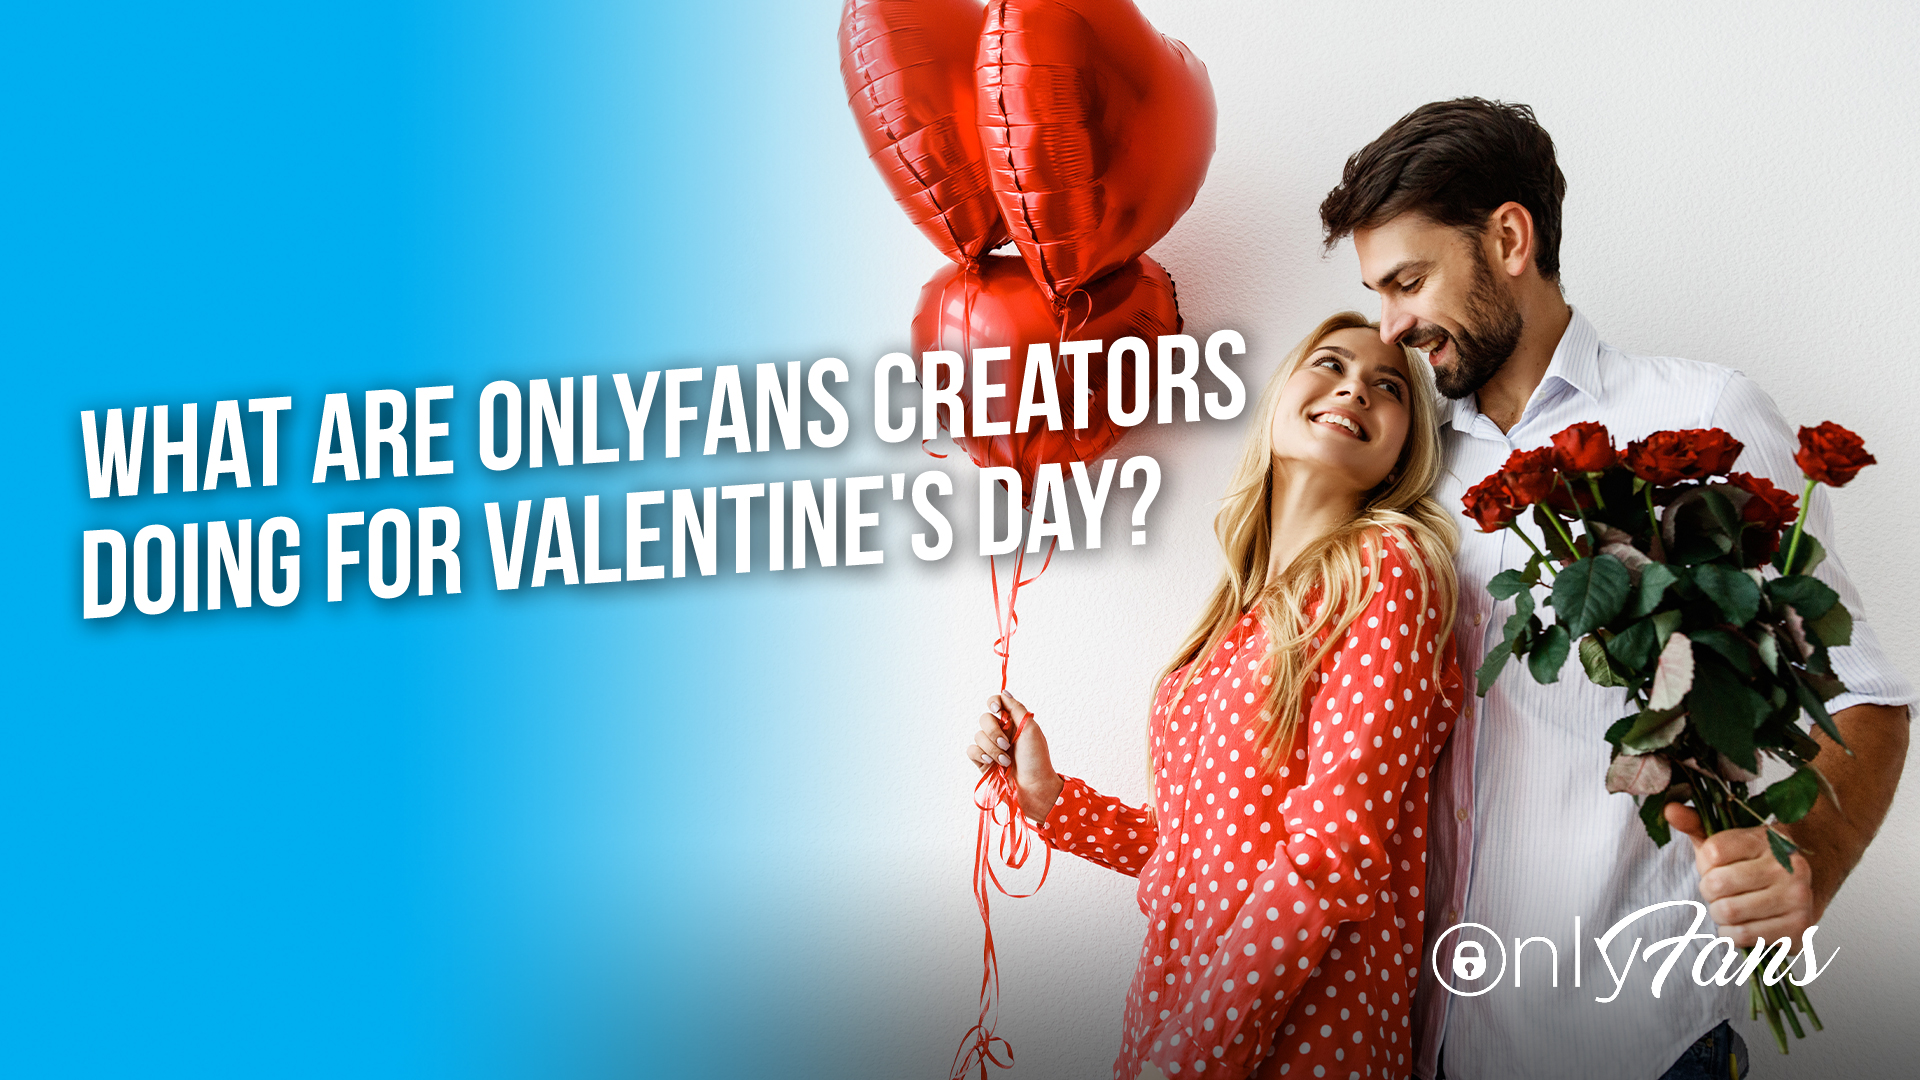 OnlyFans creators are doing for Valentine's Day